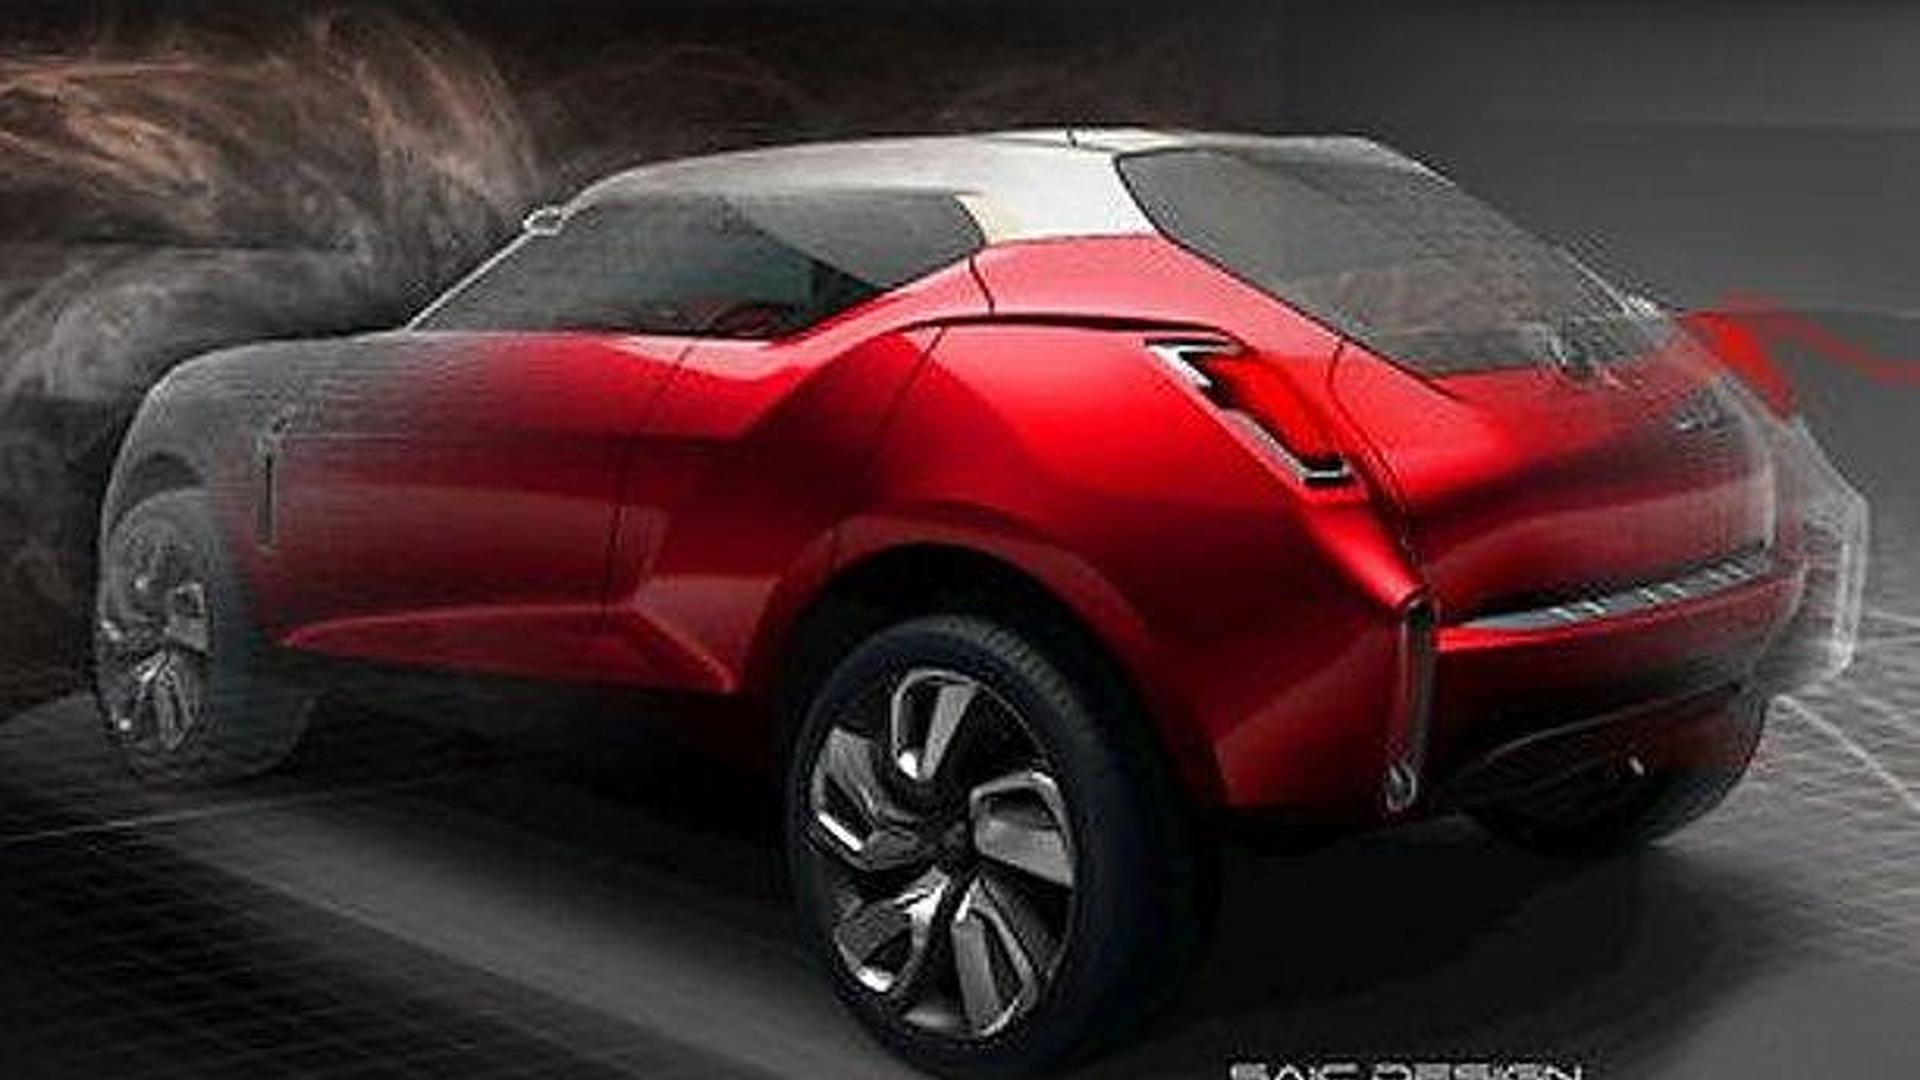 MG Icon concept announced for Auto China 2012